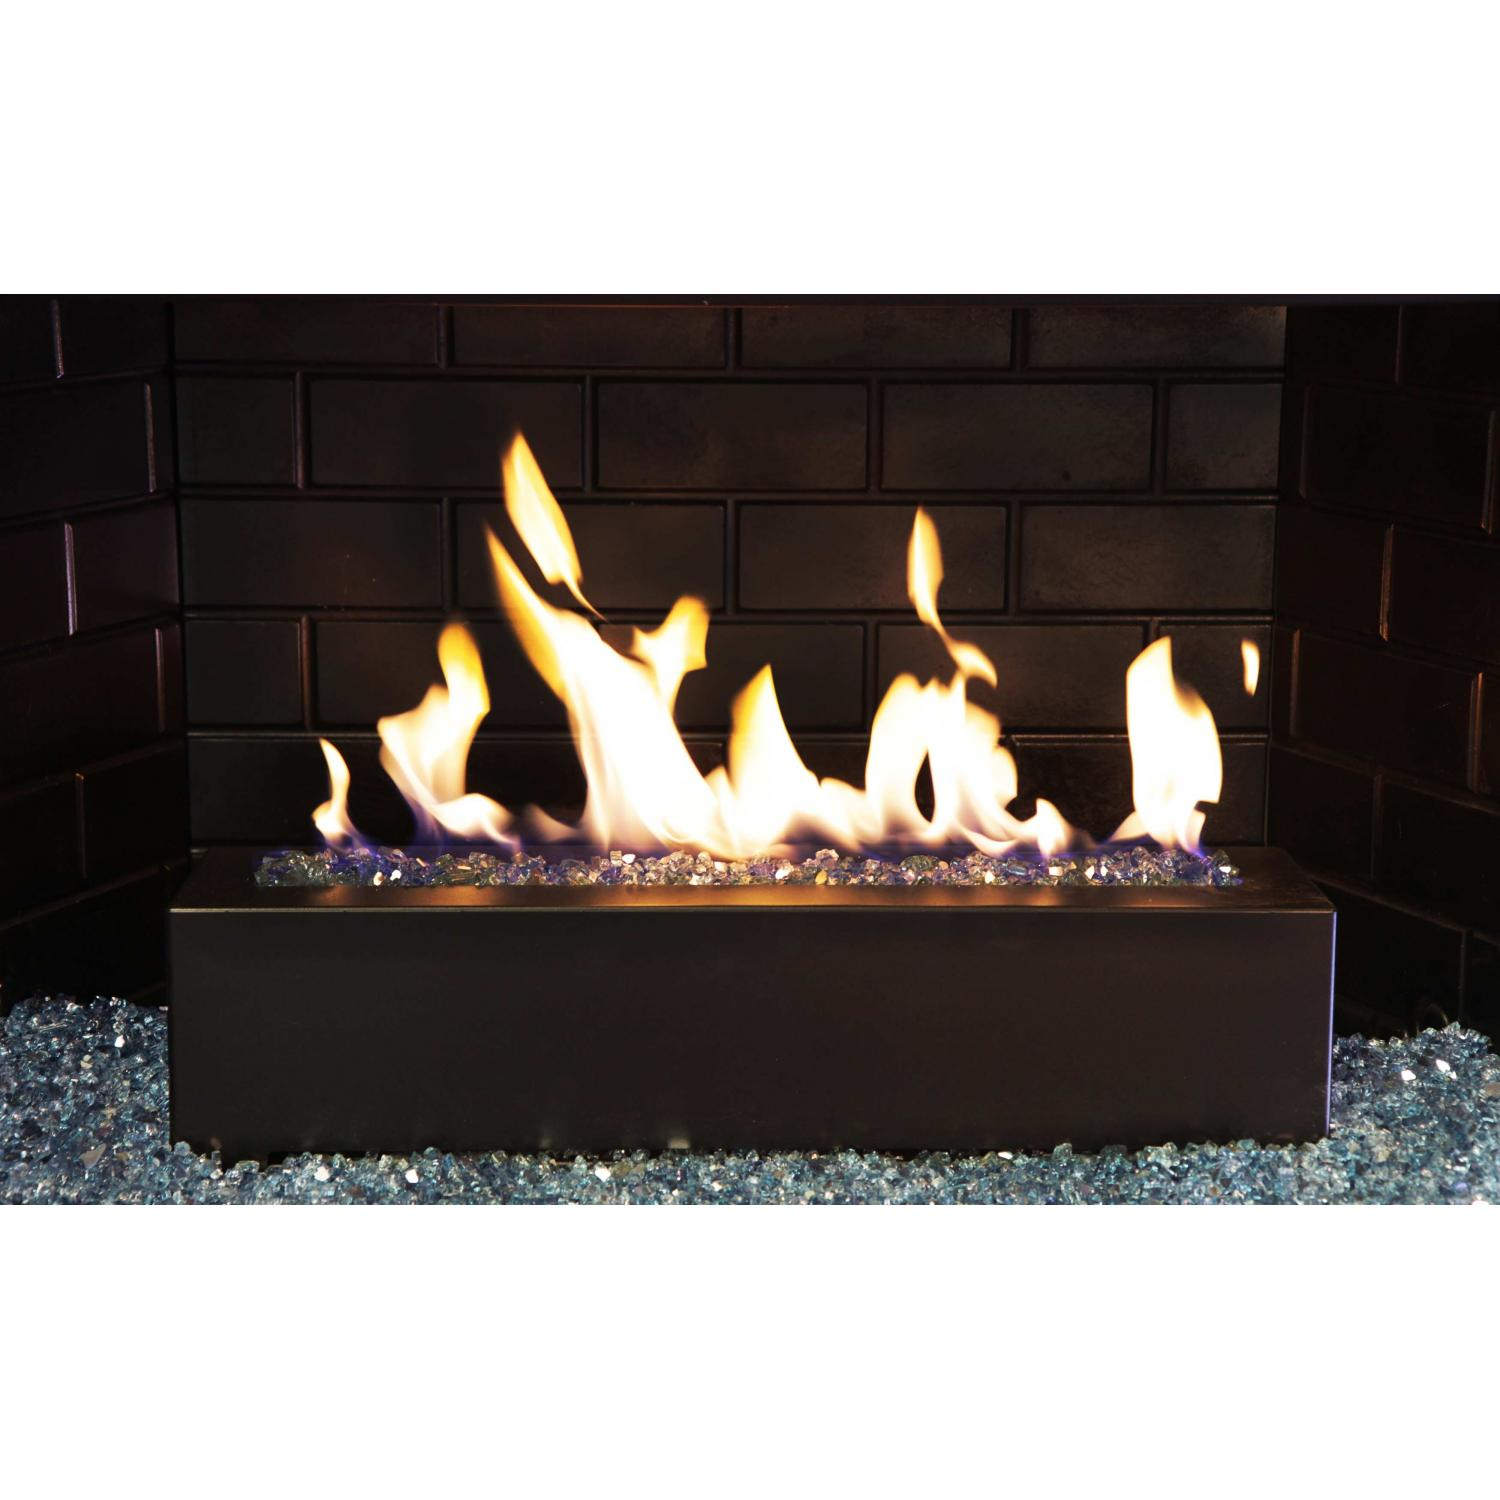 Picture of Golden Blount 24-Inch Alpine Linear Burner With Decorative Black Front Face And Steel Blue Reflective Fire Glass